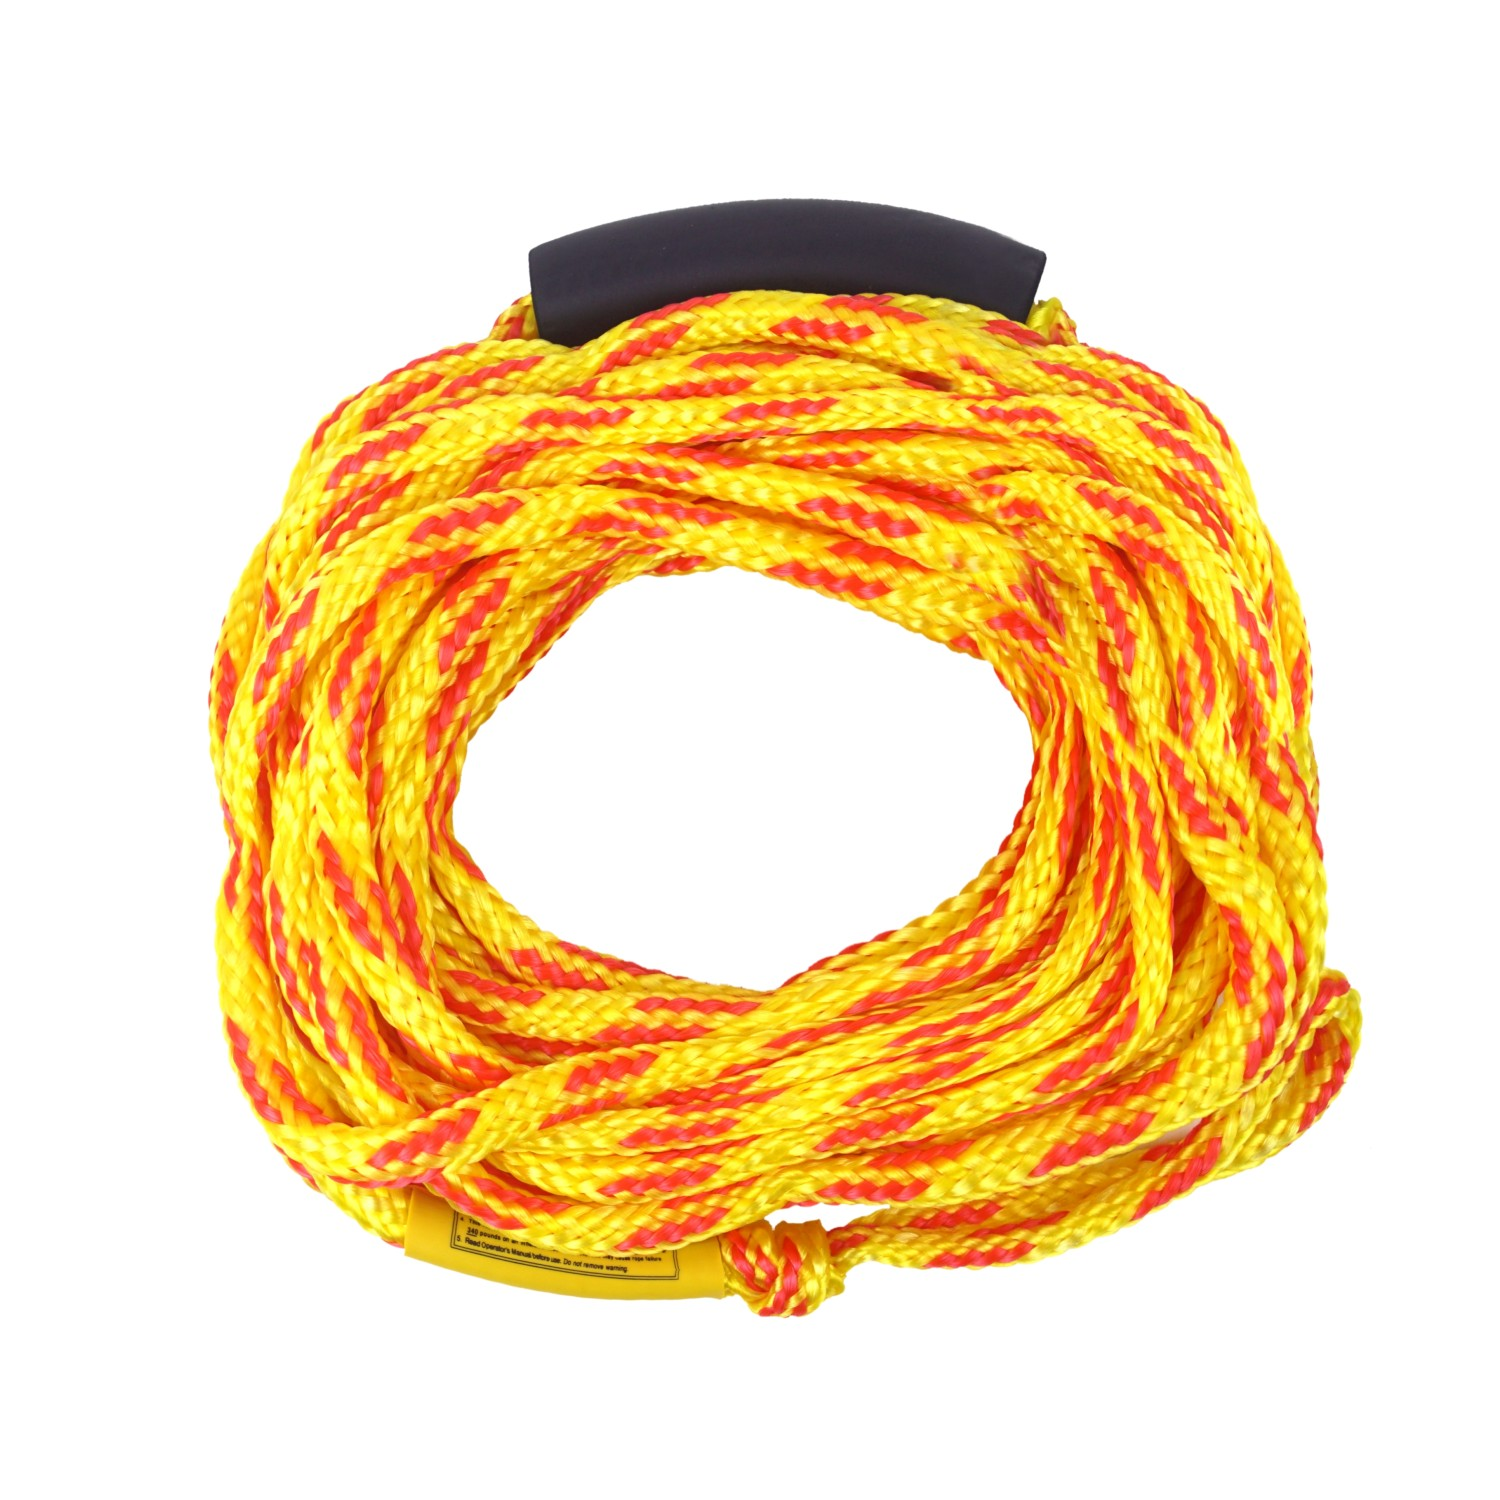 Spectra Pp Wakeboard And Waterski Handles Ropes Mainlines Water Ski Tow Harness Rope Yellow Red